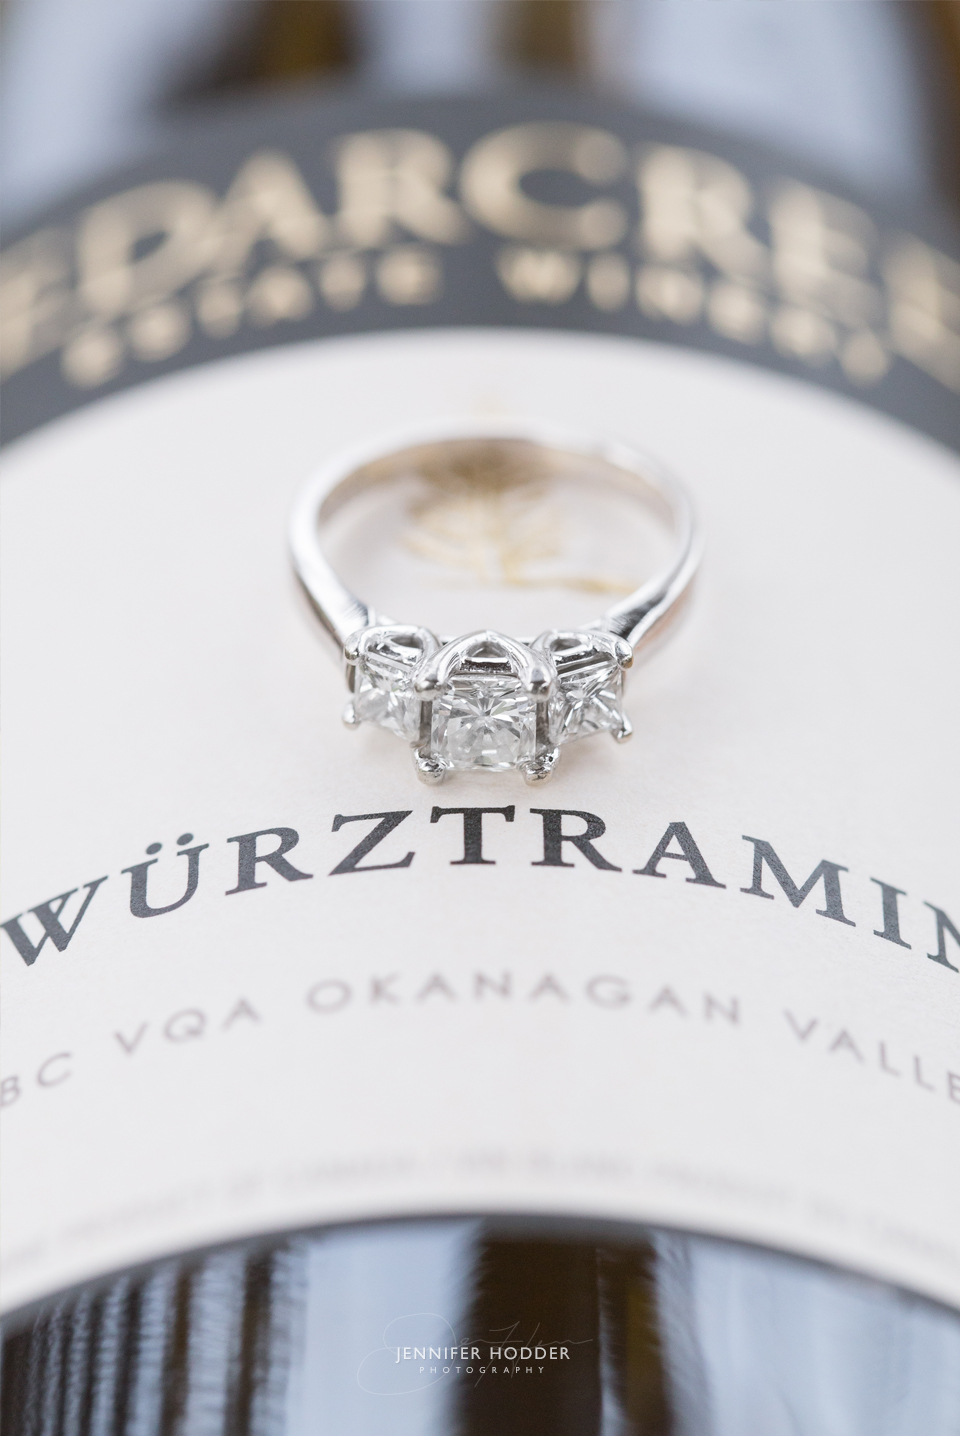 Cedar Creek gewurztraminer and engagement ring